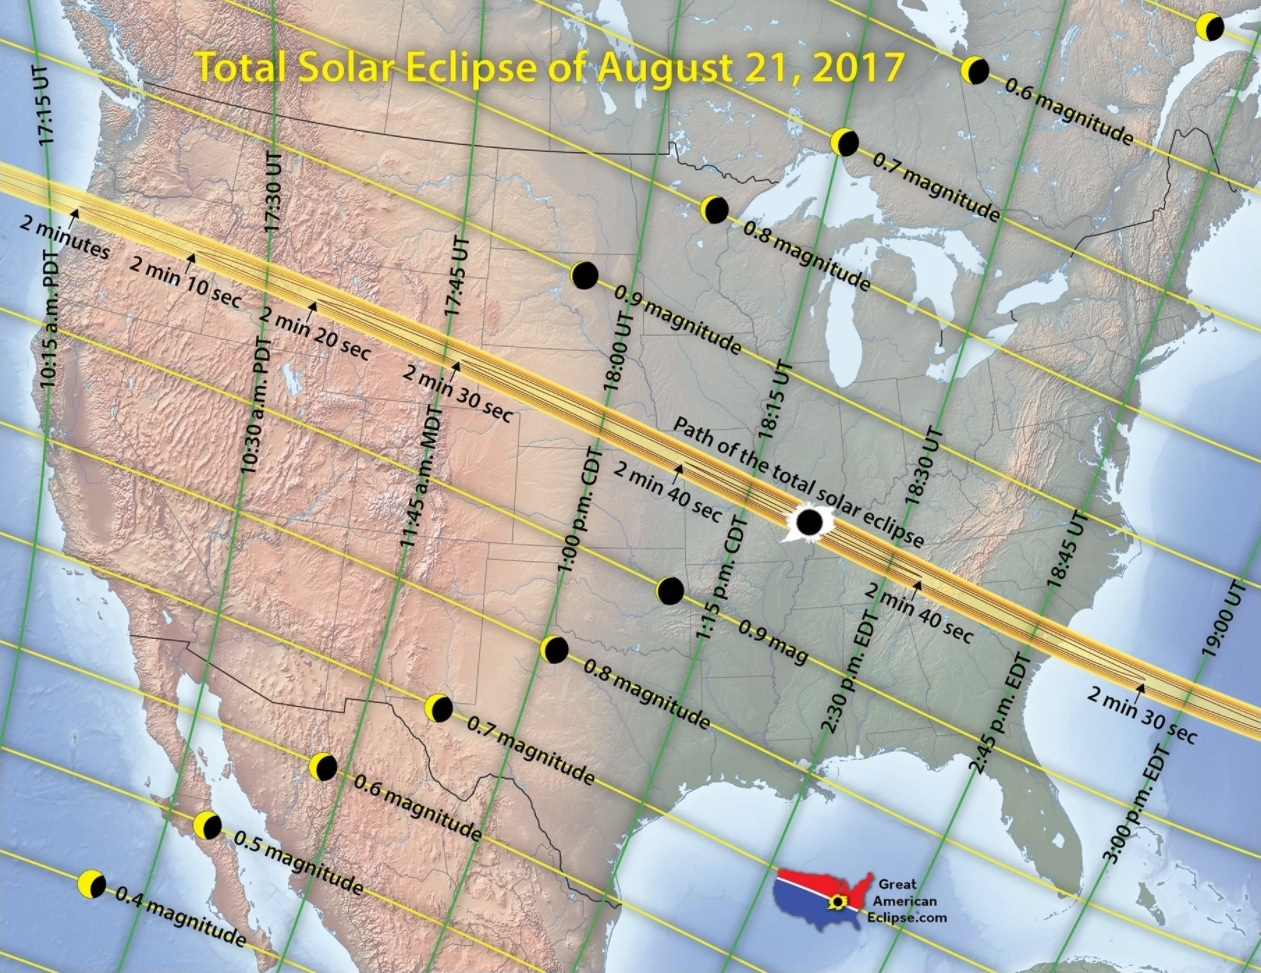 Solar Eclipse 2017 Highway Traffic Map.Solar Eclipse 2017 Traffic And Weather Forecasts For States In